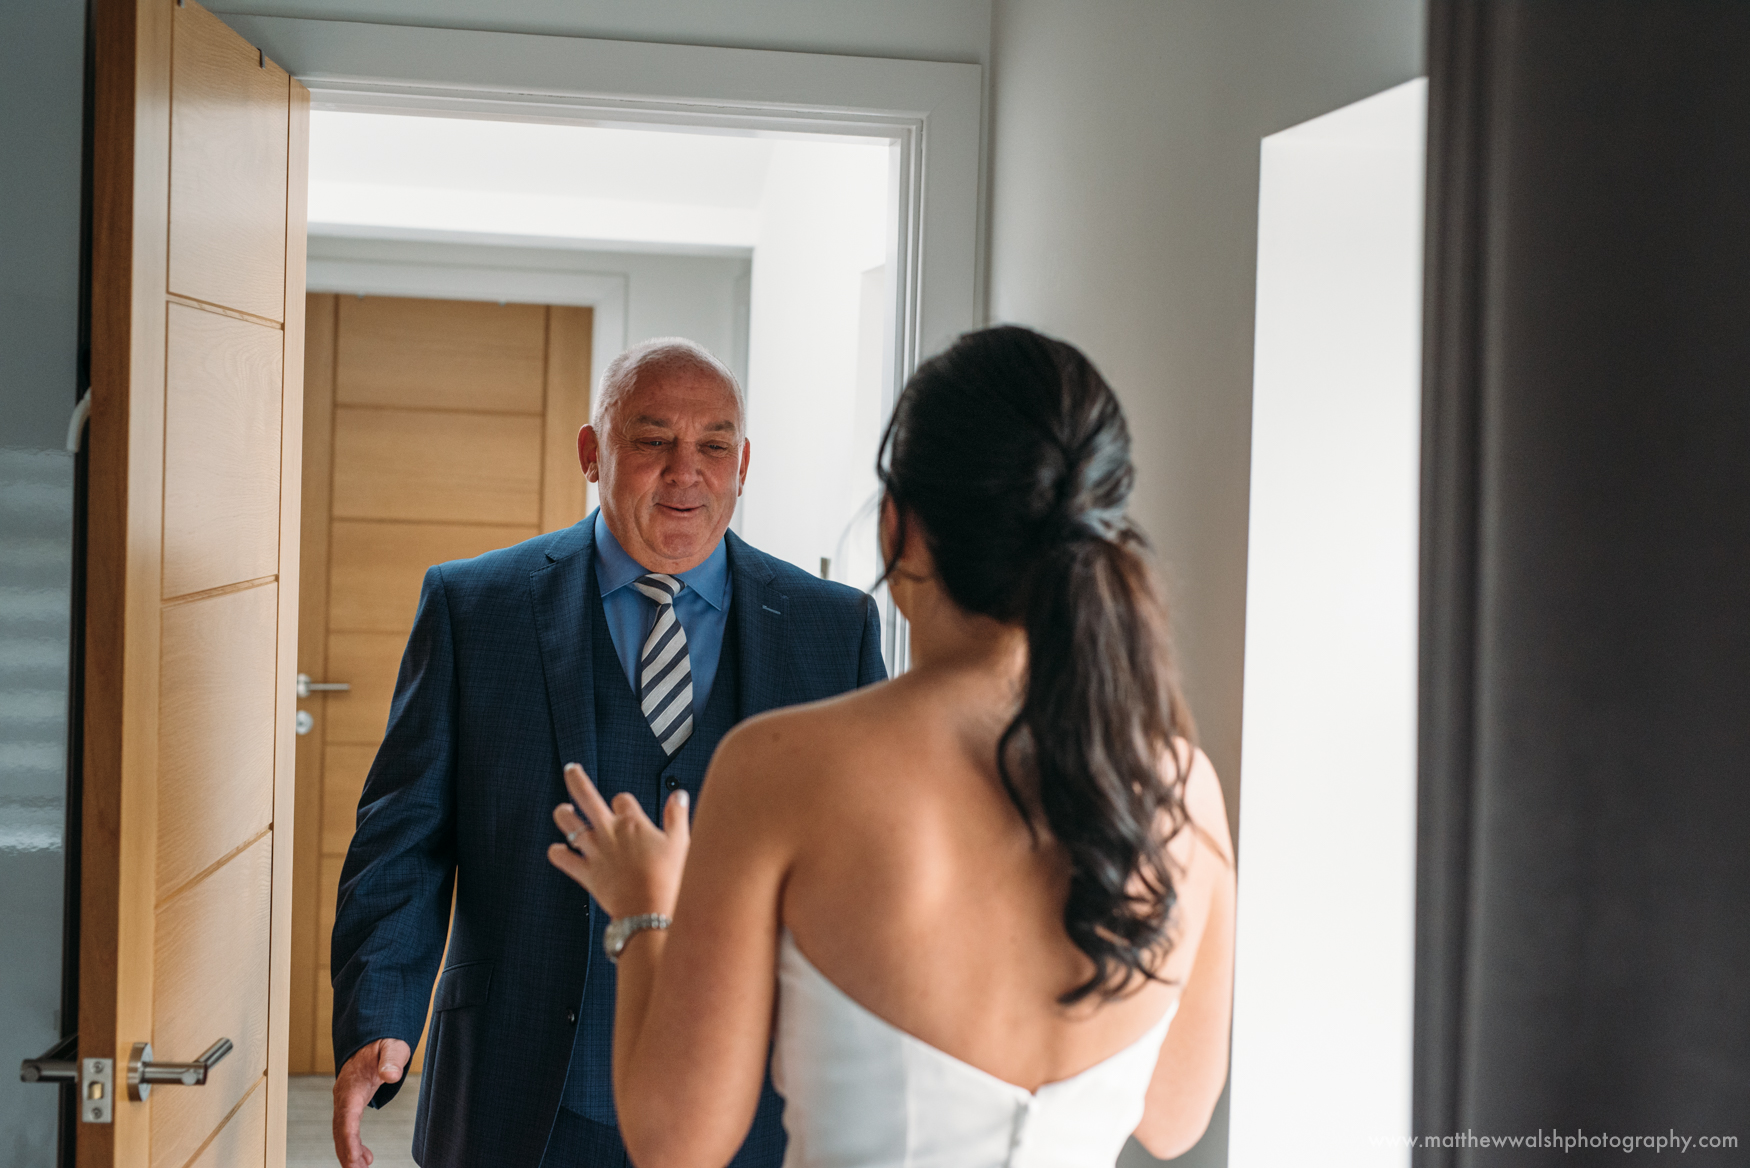 The moment captured as the father of the bride sees his daughter in her wedding dress for the first time